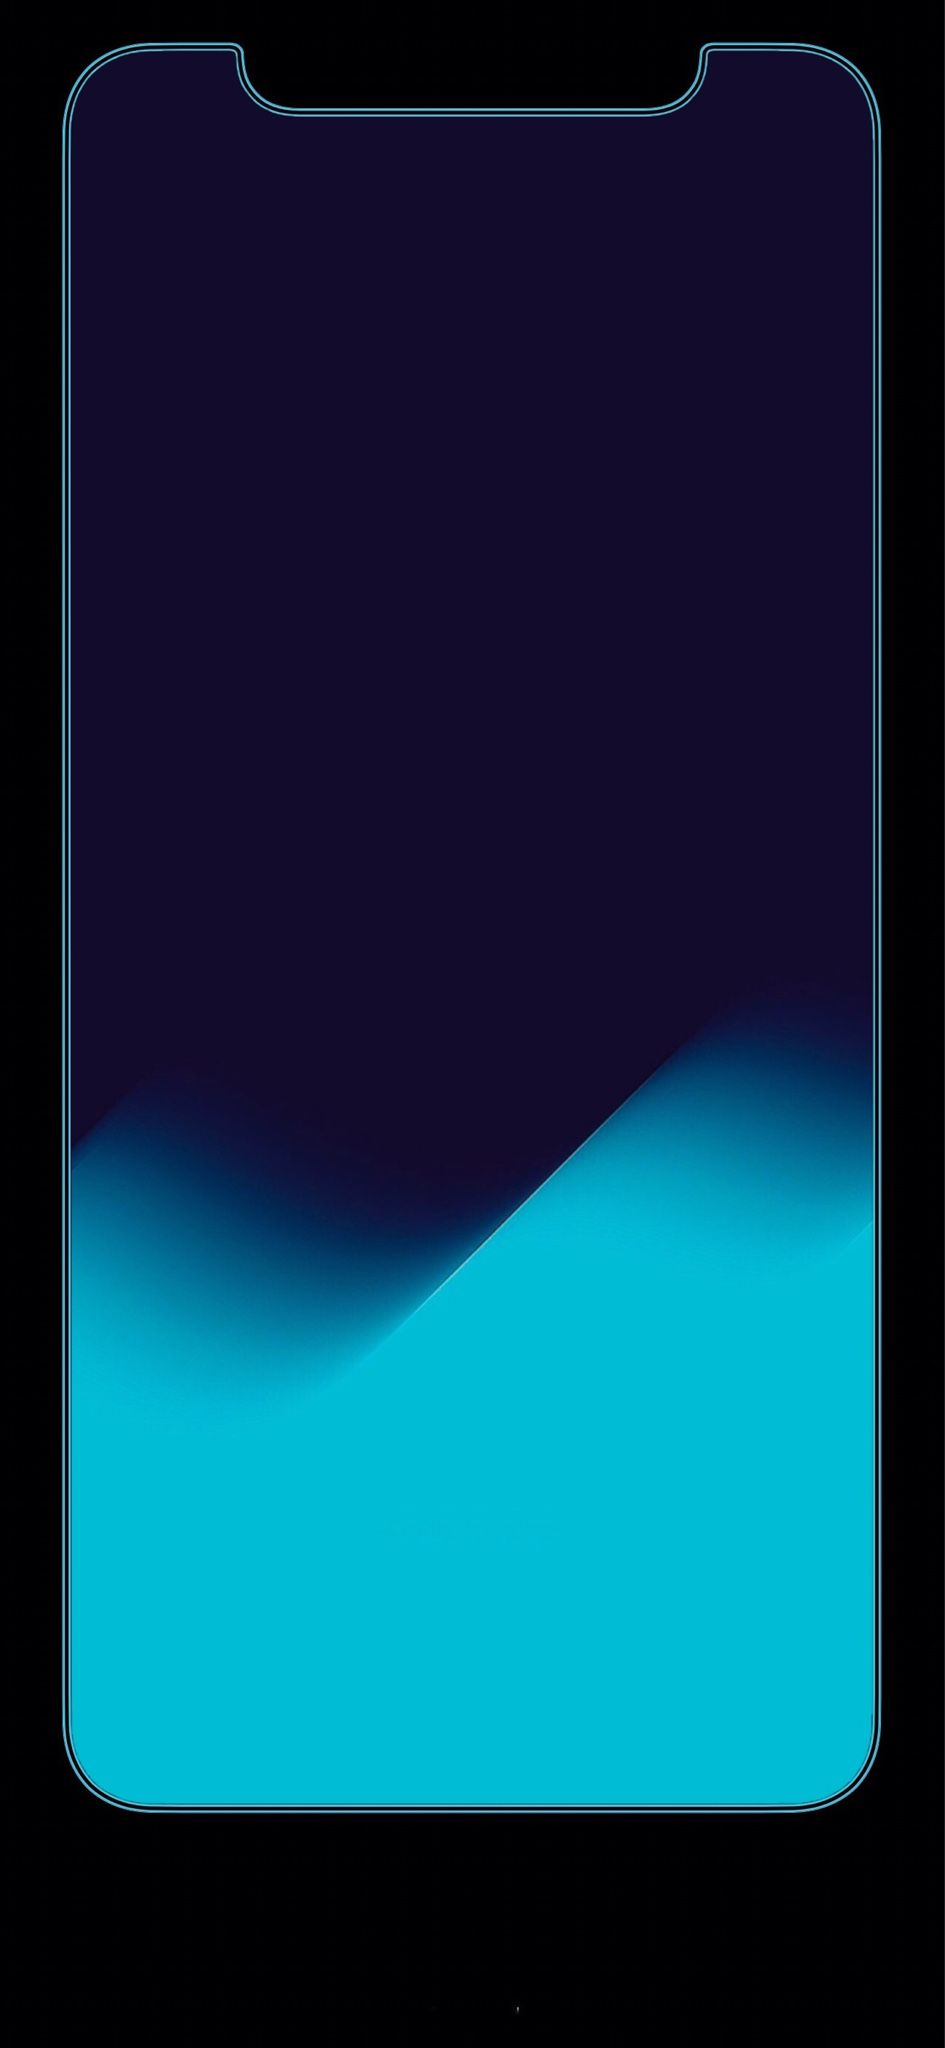 The Iphone X Xs Wallpaper Thread Page 51 Iphone Ipad Ipod Forums At Imore Com Iphone Wallpaper Ios Iphone Wallpaper Hd Original Apple Wallpaper Iphone